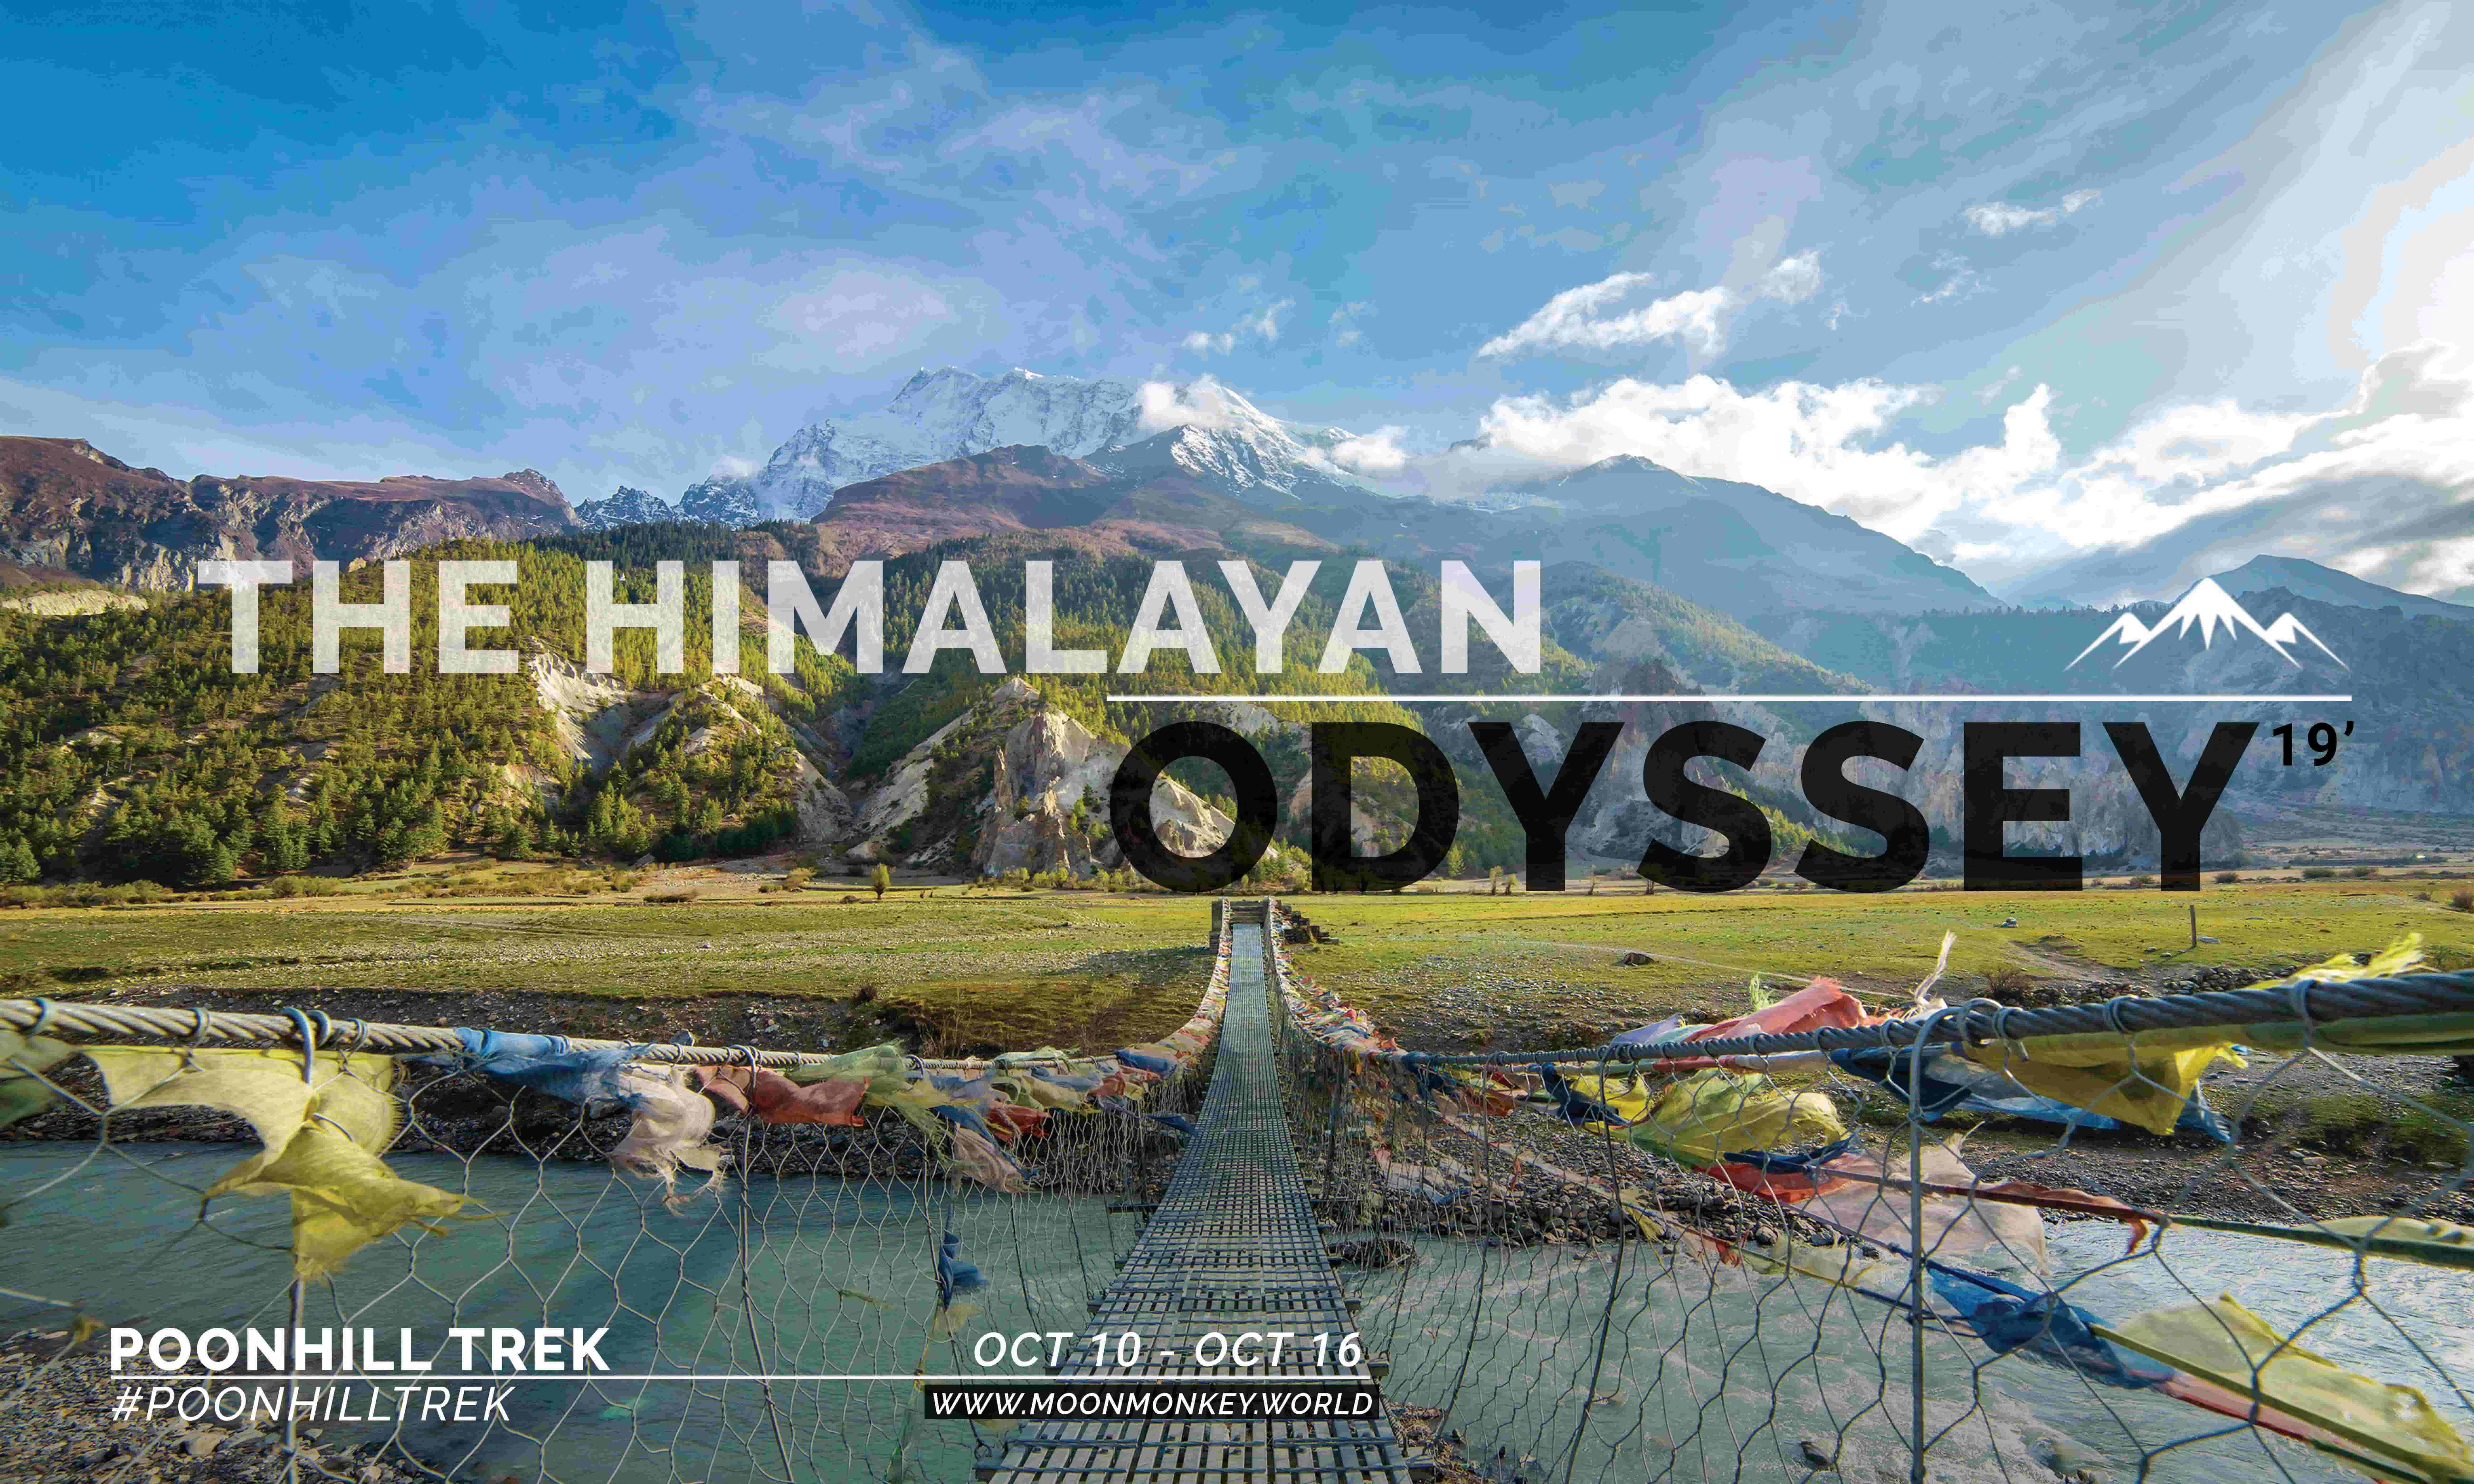 Poonhill, The Himalayan Odyssey